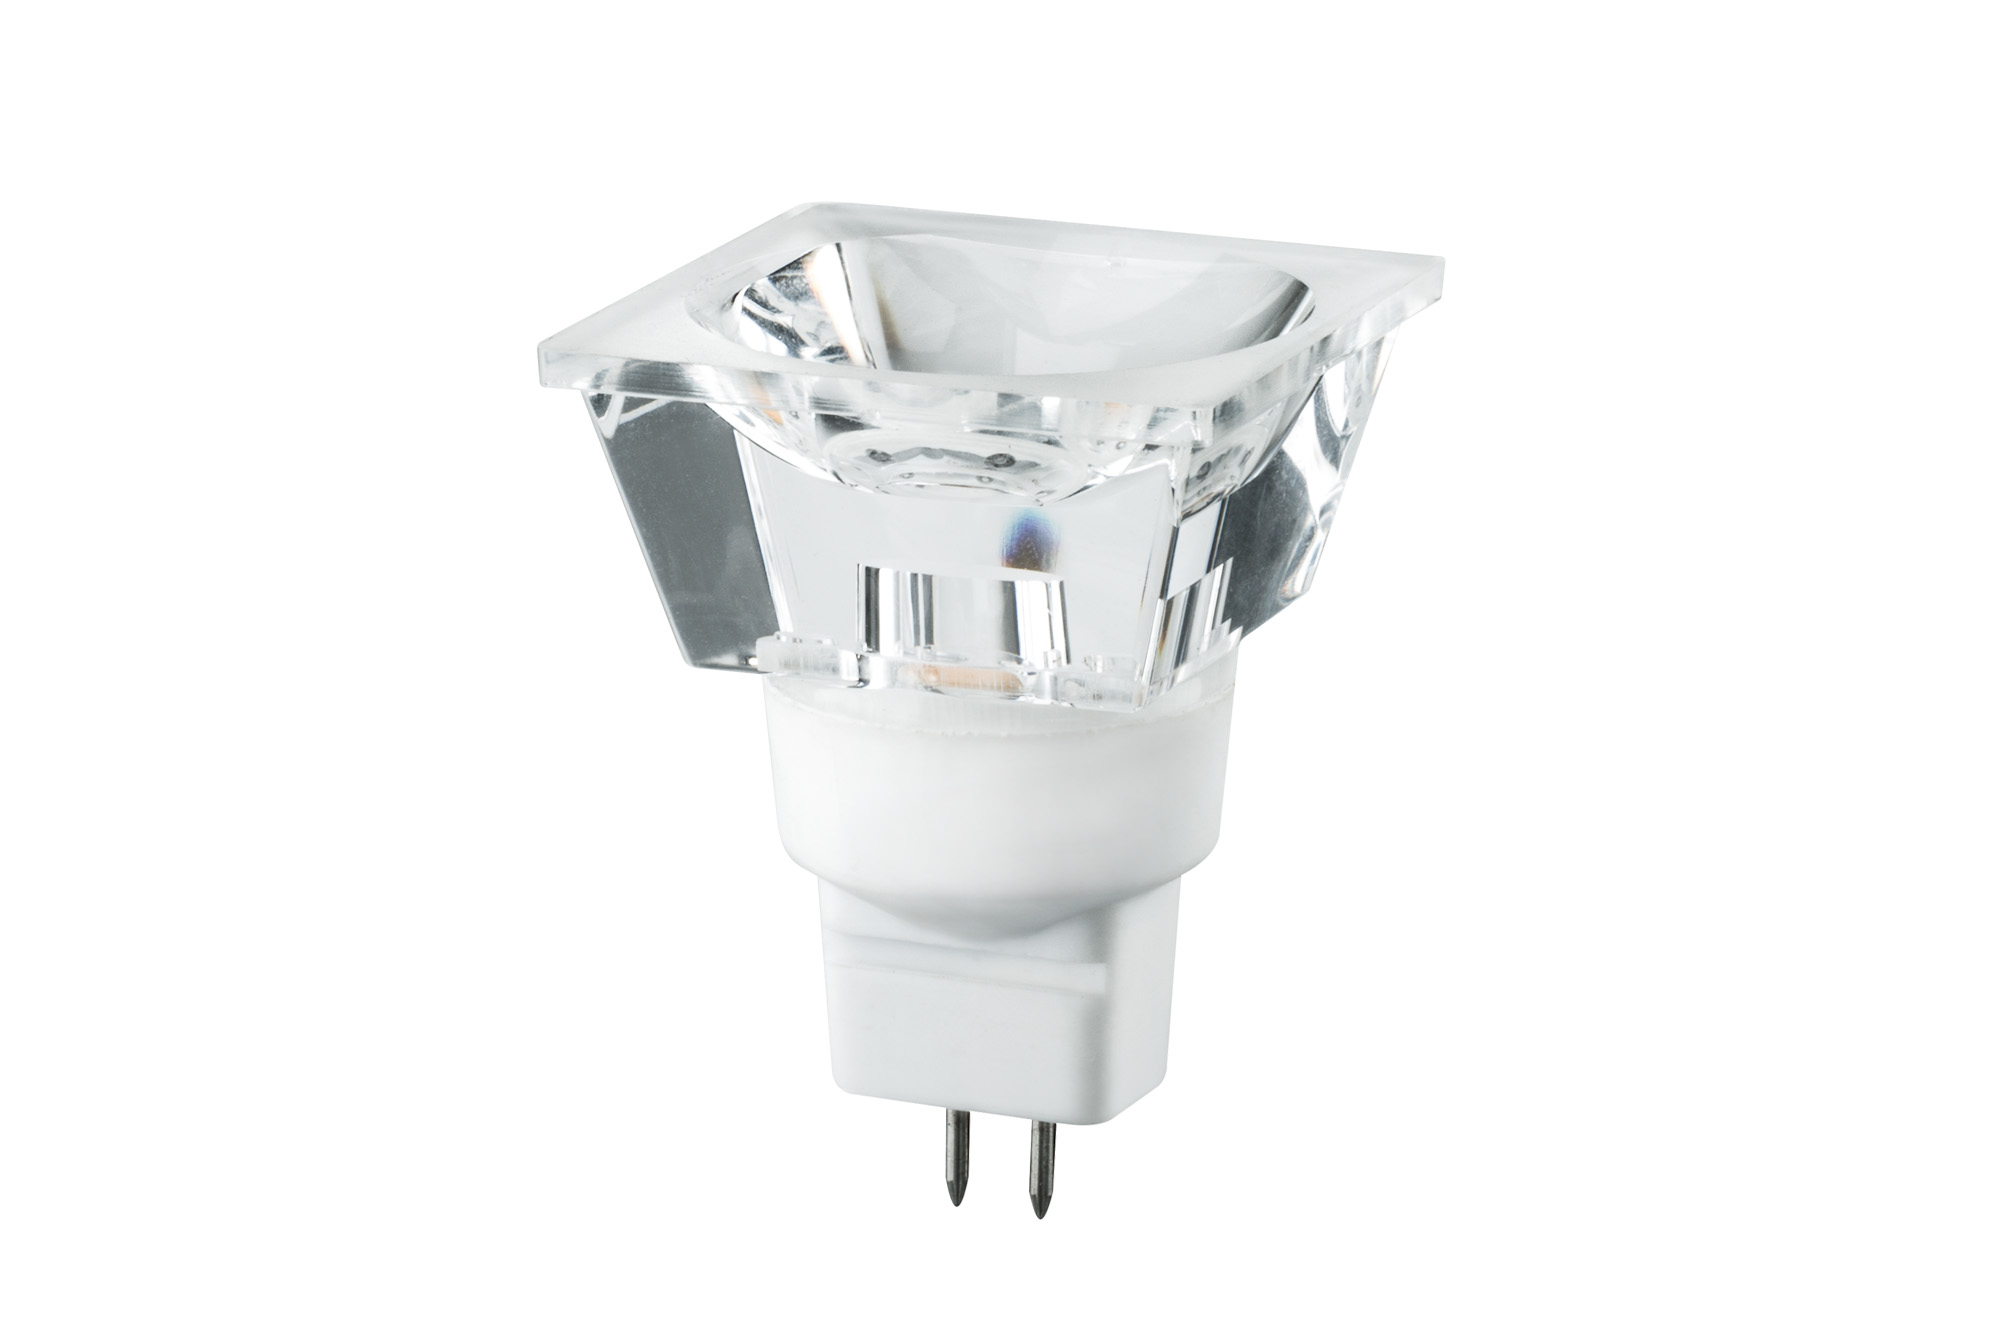 Led diamond quadro 3w gu53 12v warmwei 28325 led diamond quadro 3w gu53 12v warmwei parisarafo Image collections